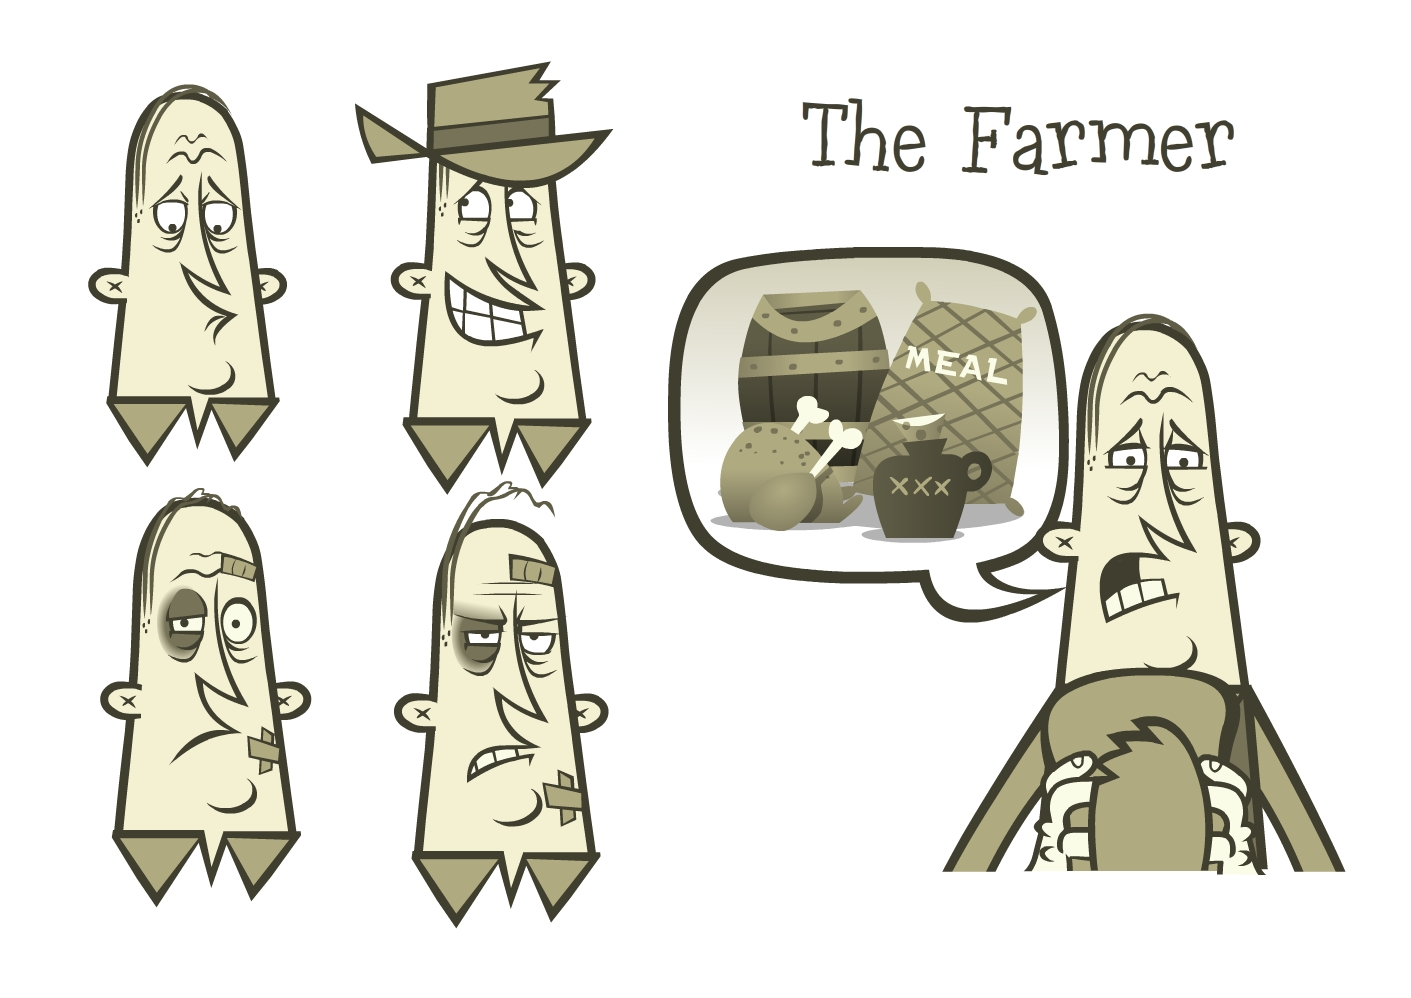 The down on his luck farmer